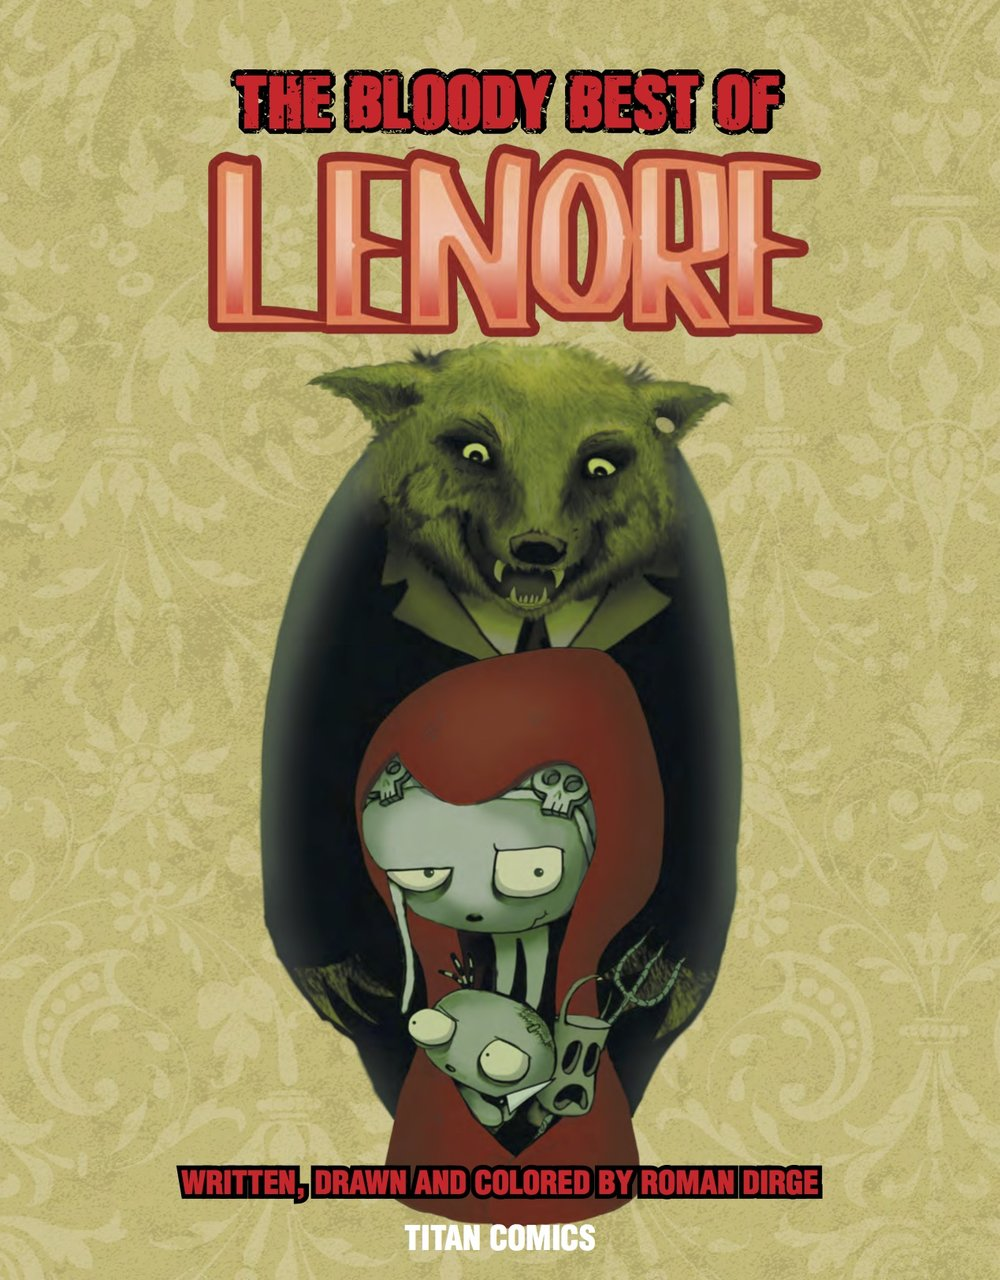 The_Bloody_Best_of_Lenore_Credits.jpg